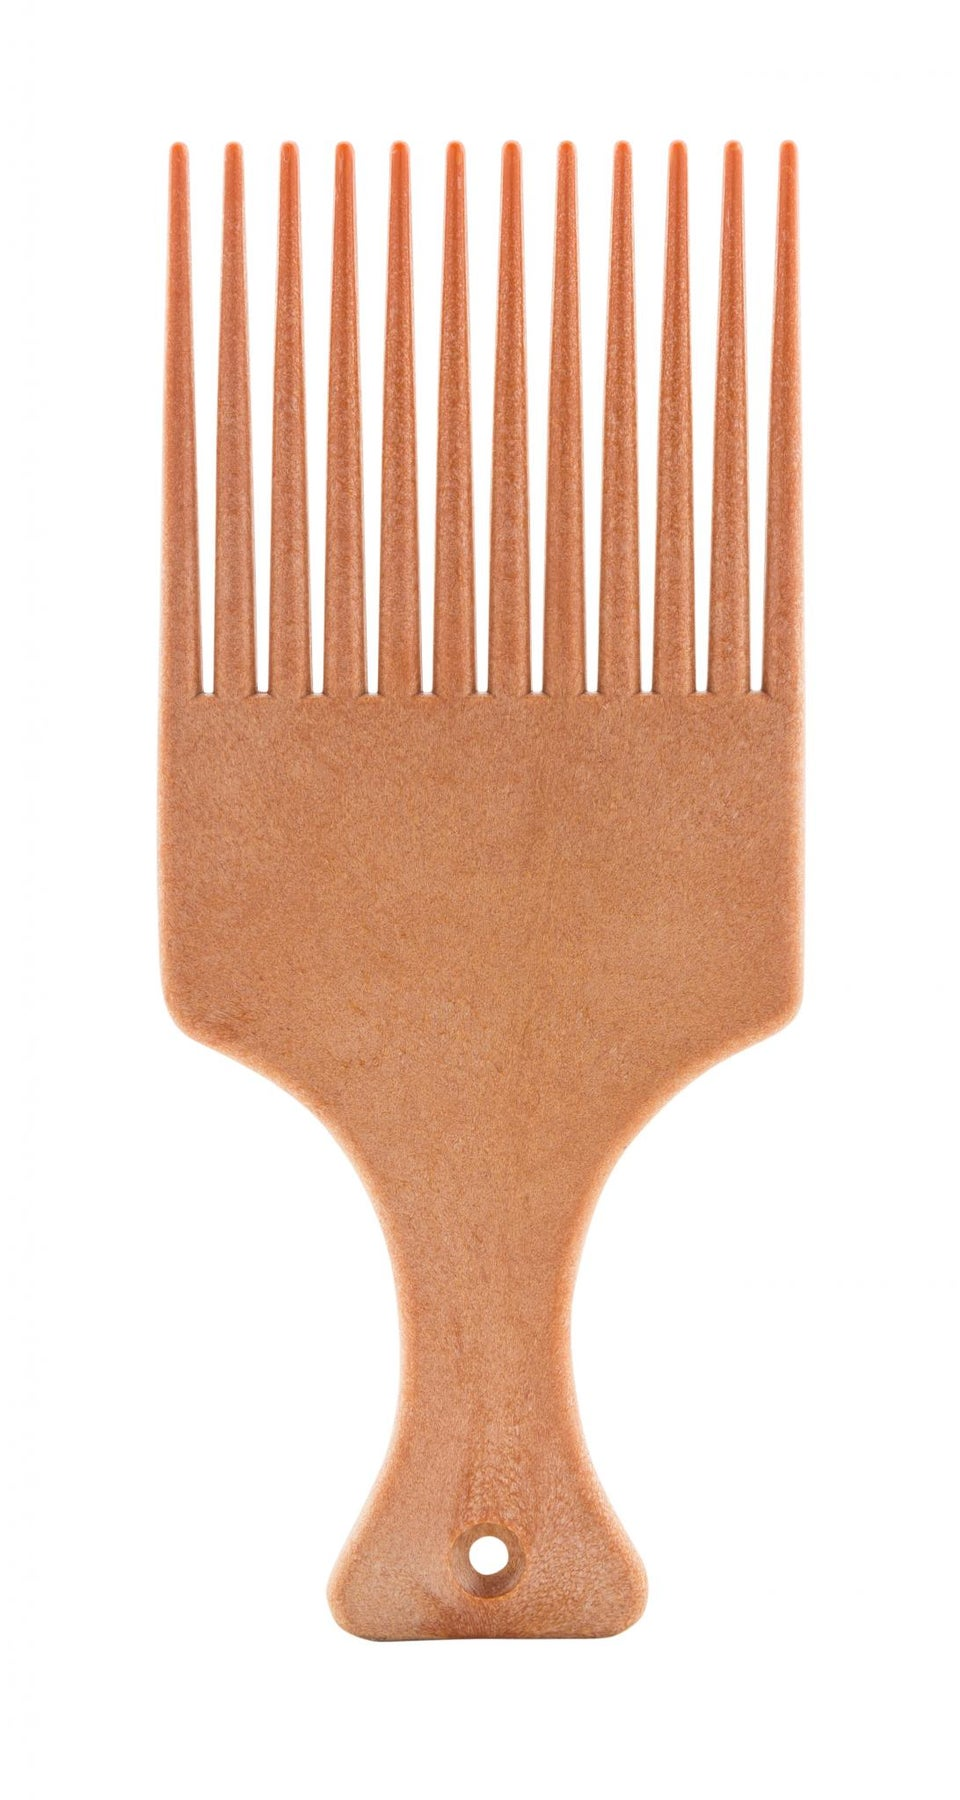 Did They Really Turn An Afro Pick Into An Onion Slicer?